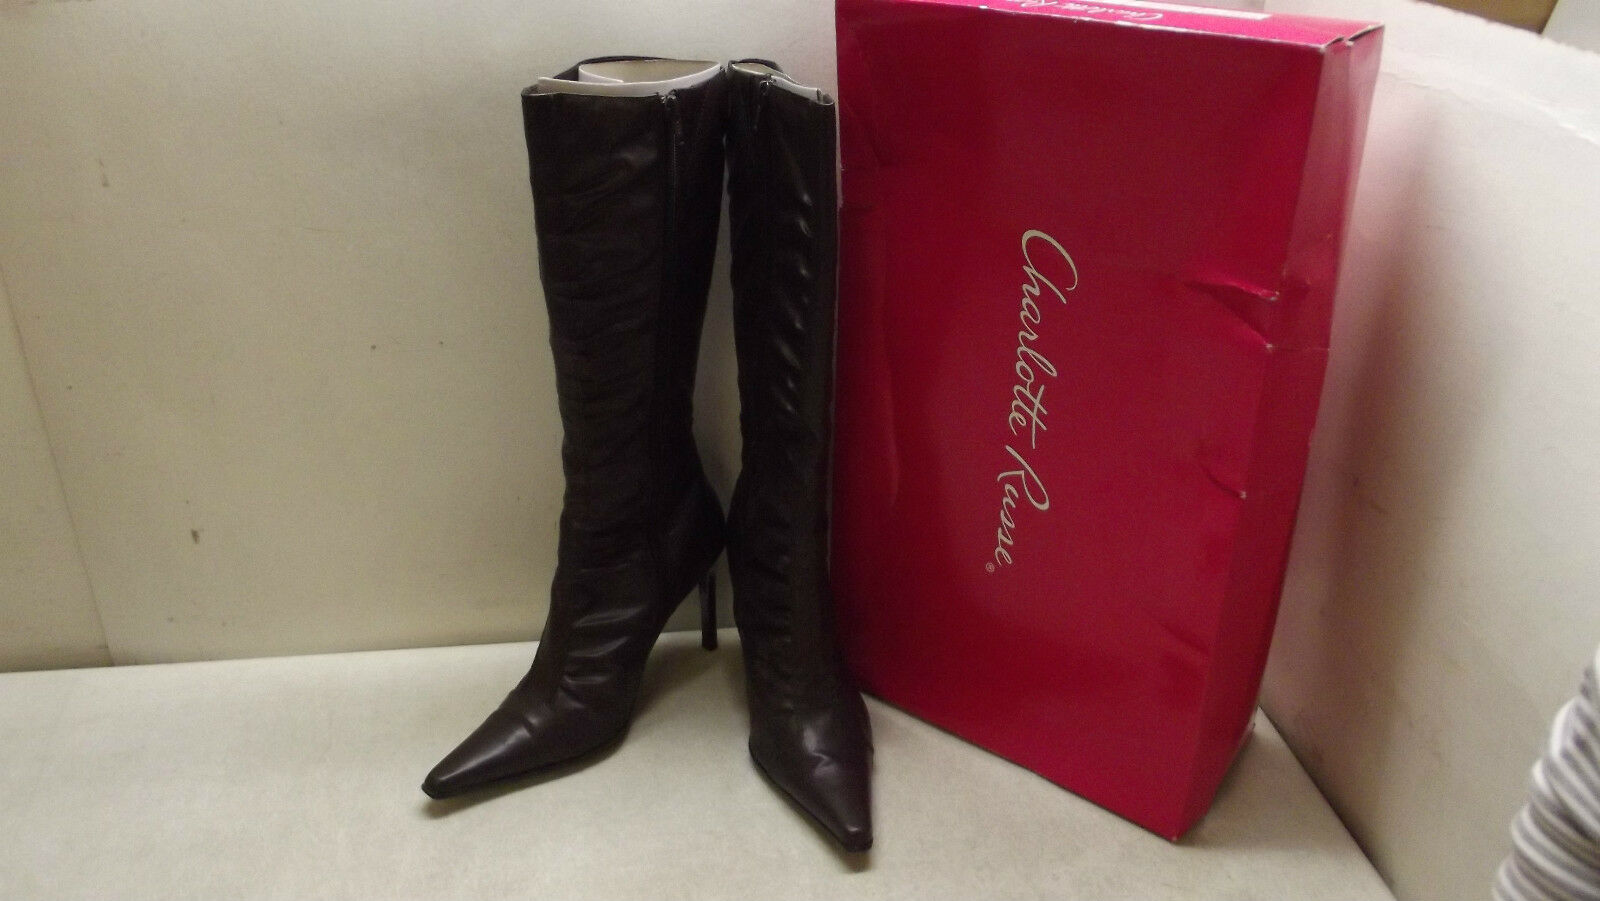 CHARLOTTE RUSSE TALL BOOTS WOMEN'S SIZE 8 CHOCOLATE BROWN